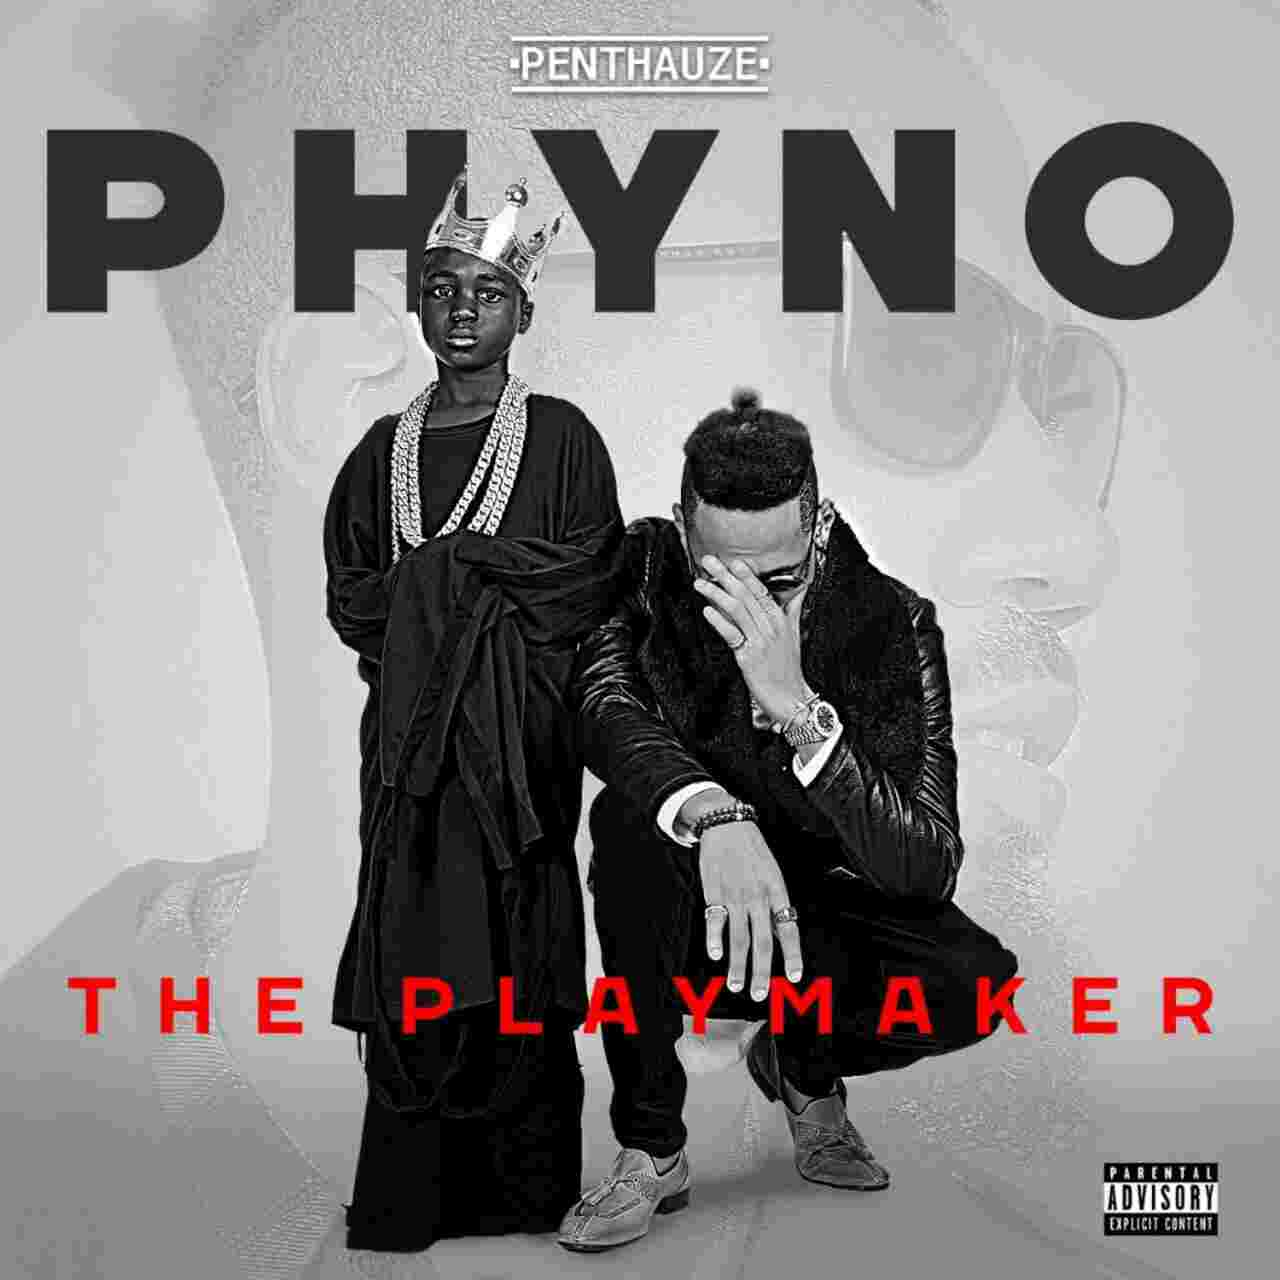 Phyno – The Playmaker (Full Album)